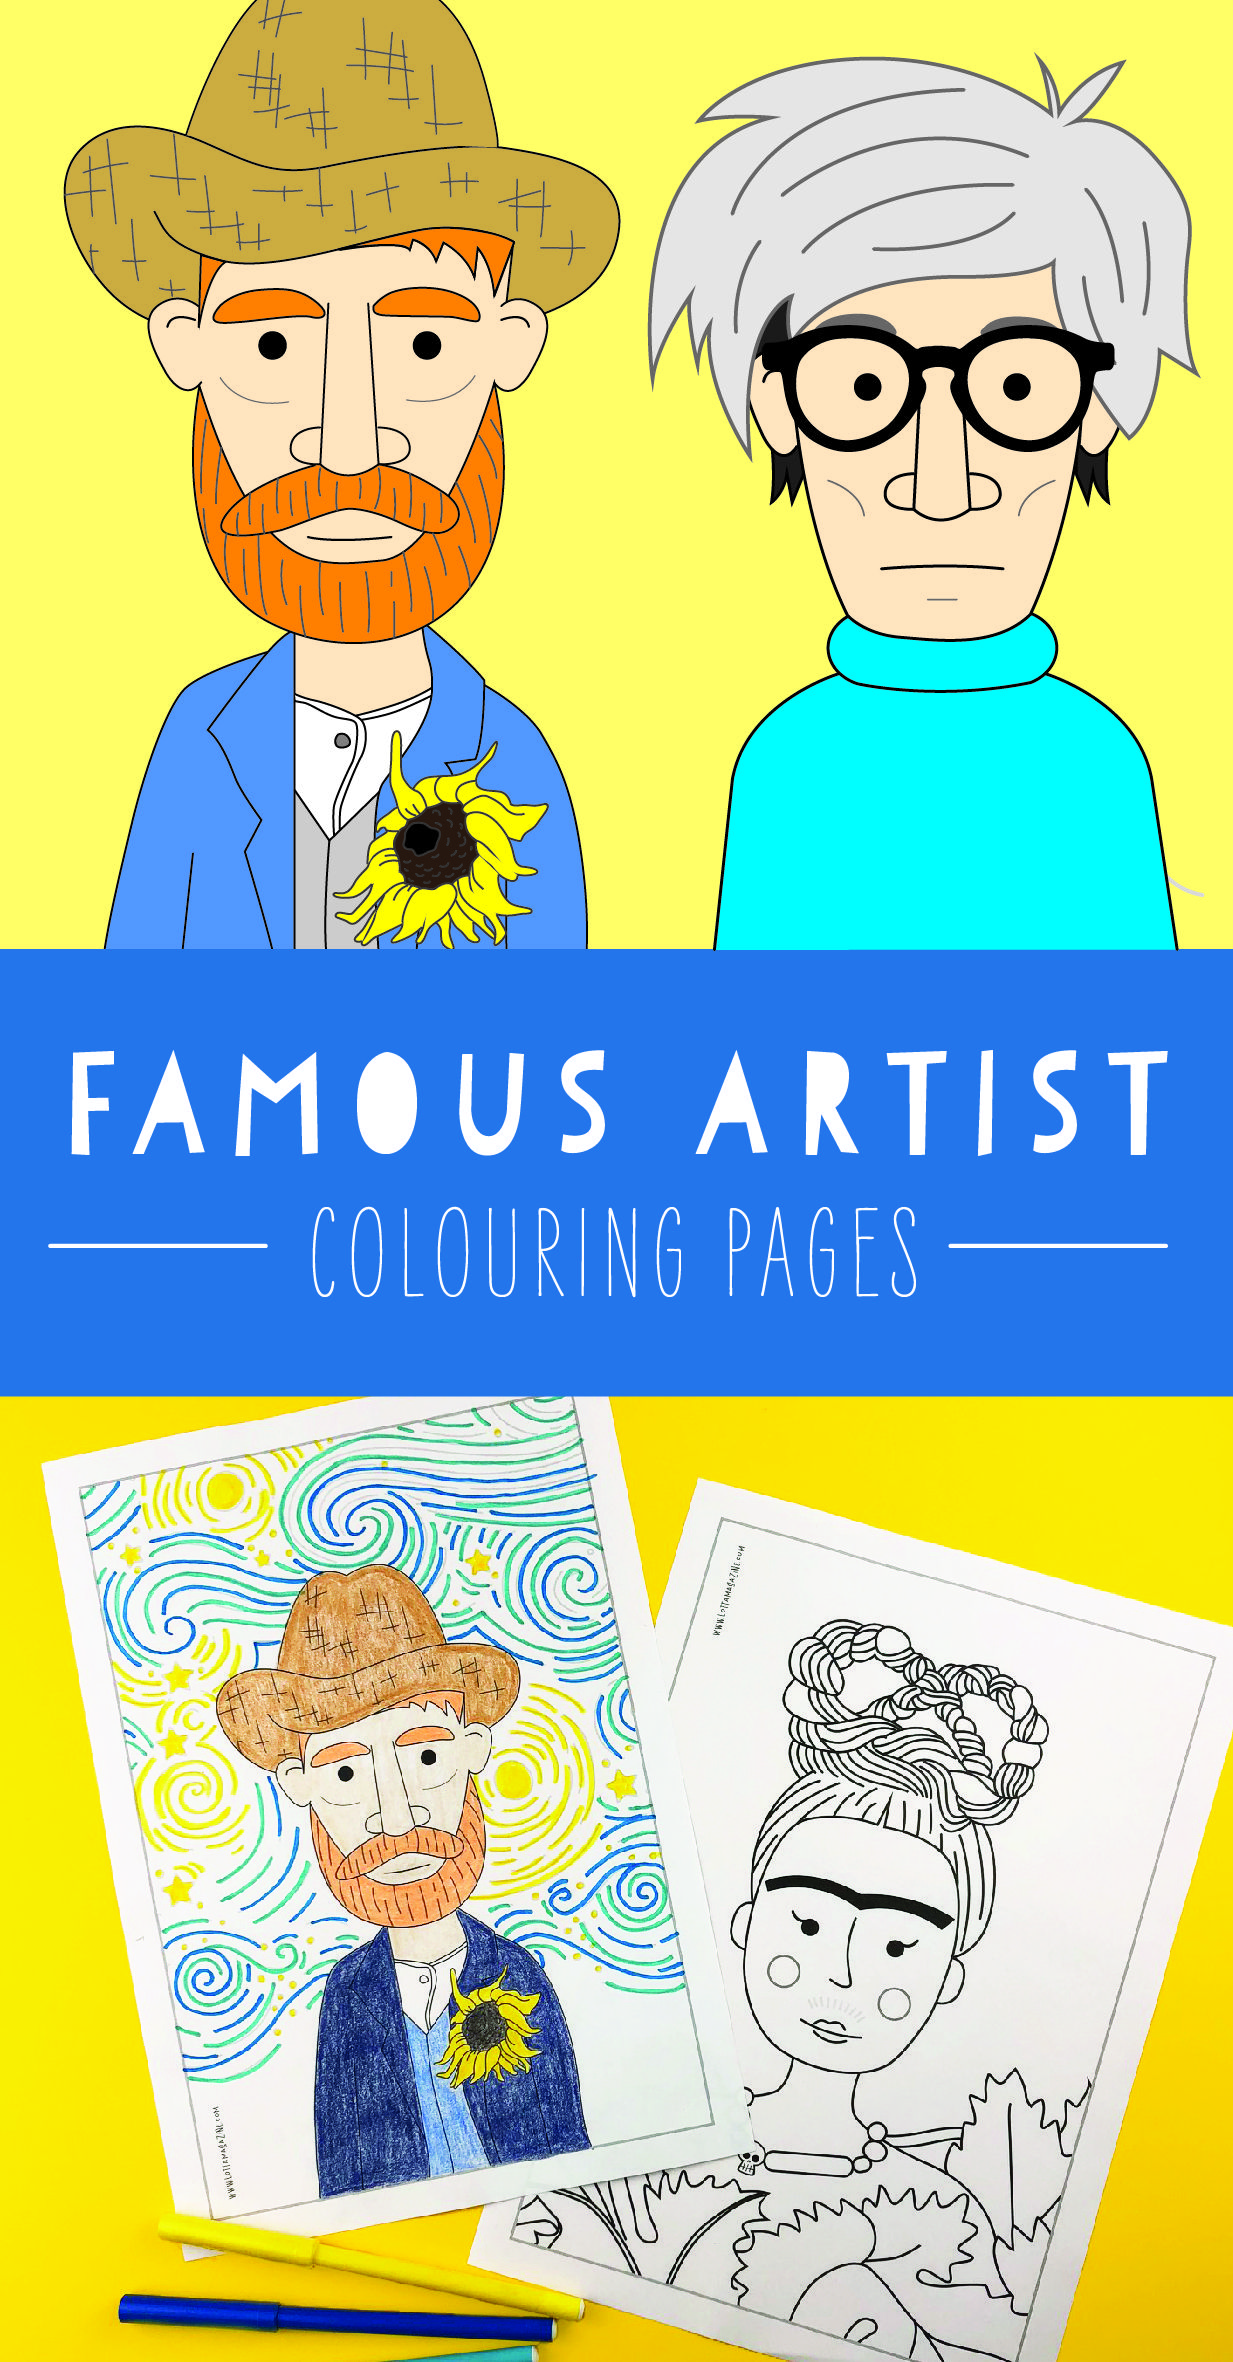 Famous artist colouring pages coloring pages featuring andy warhol